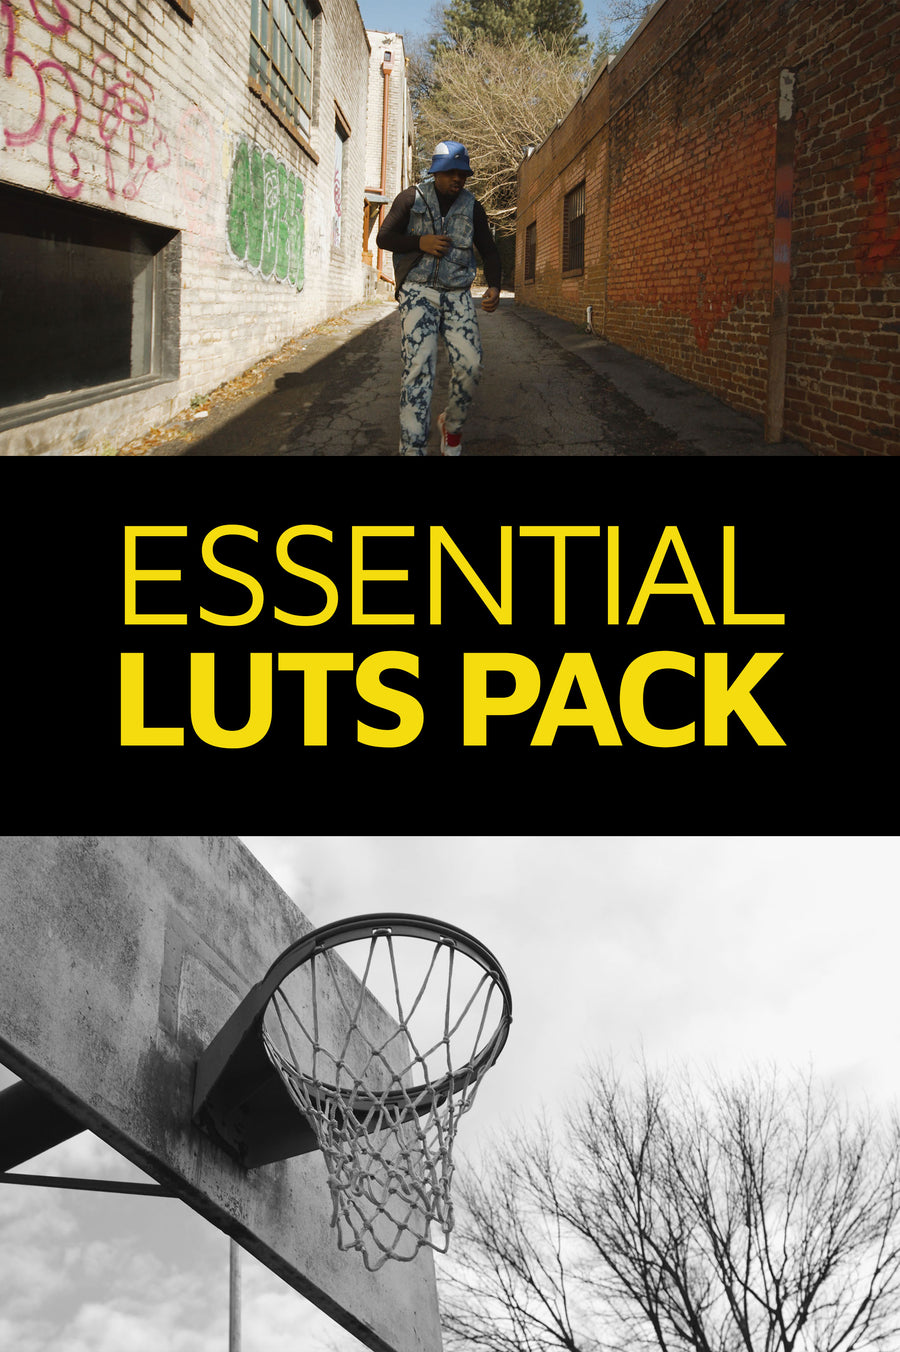 ESSENTIAL LUTs PACK